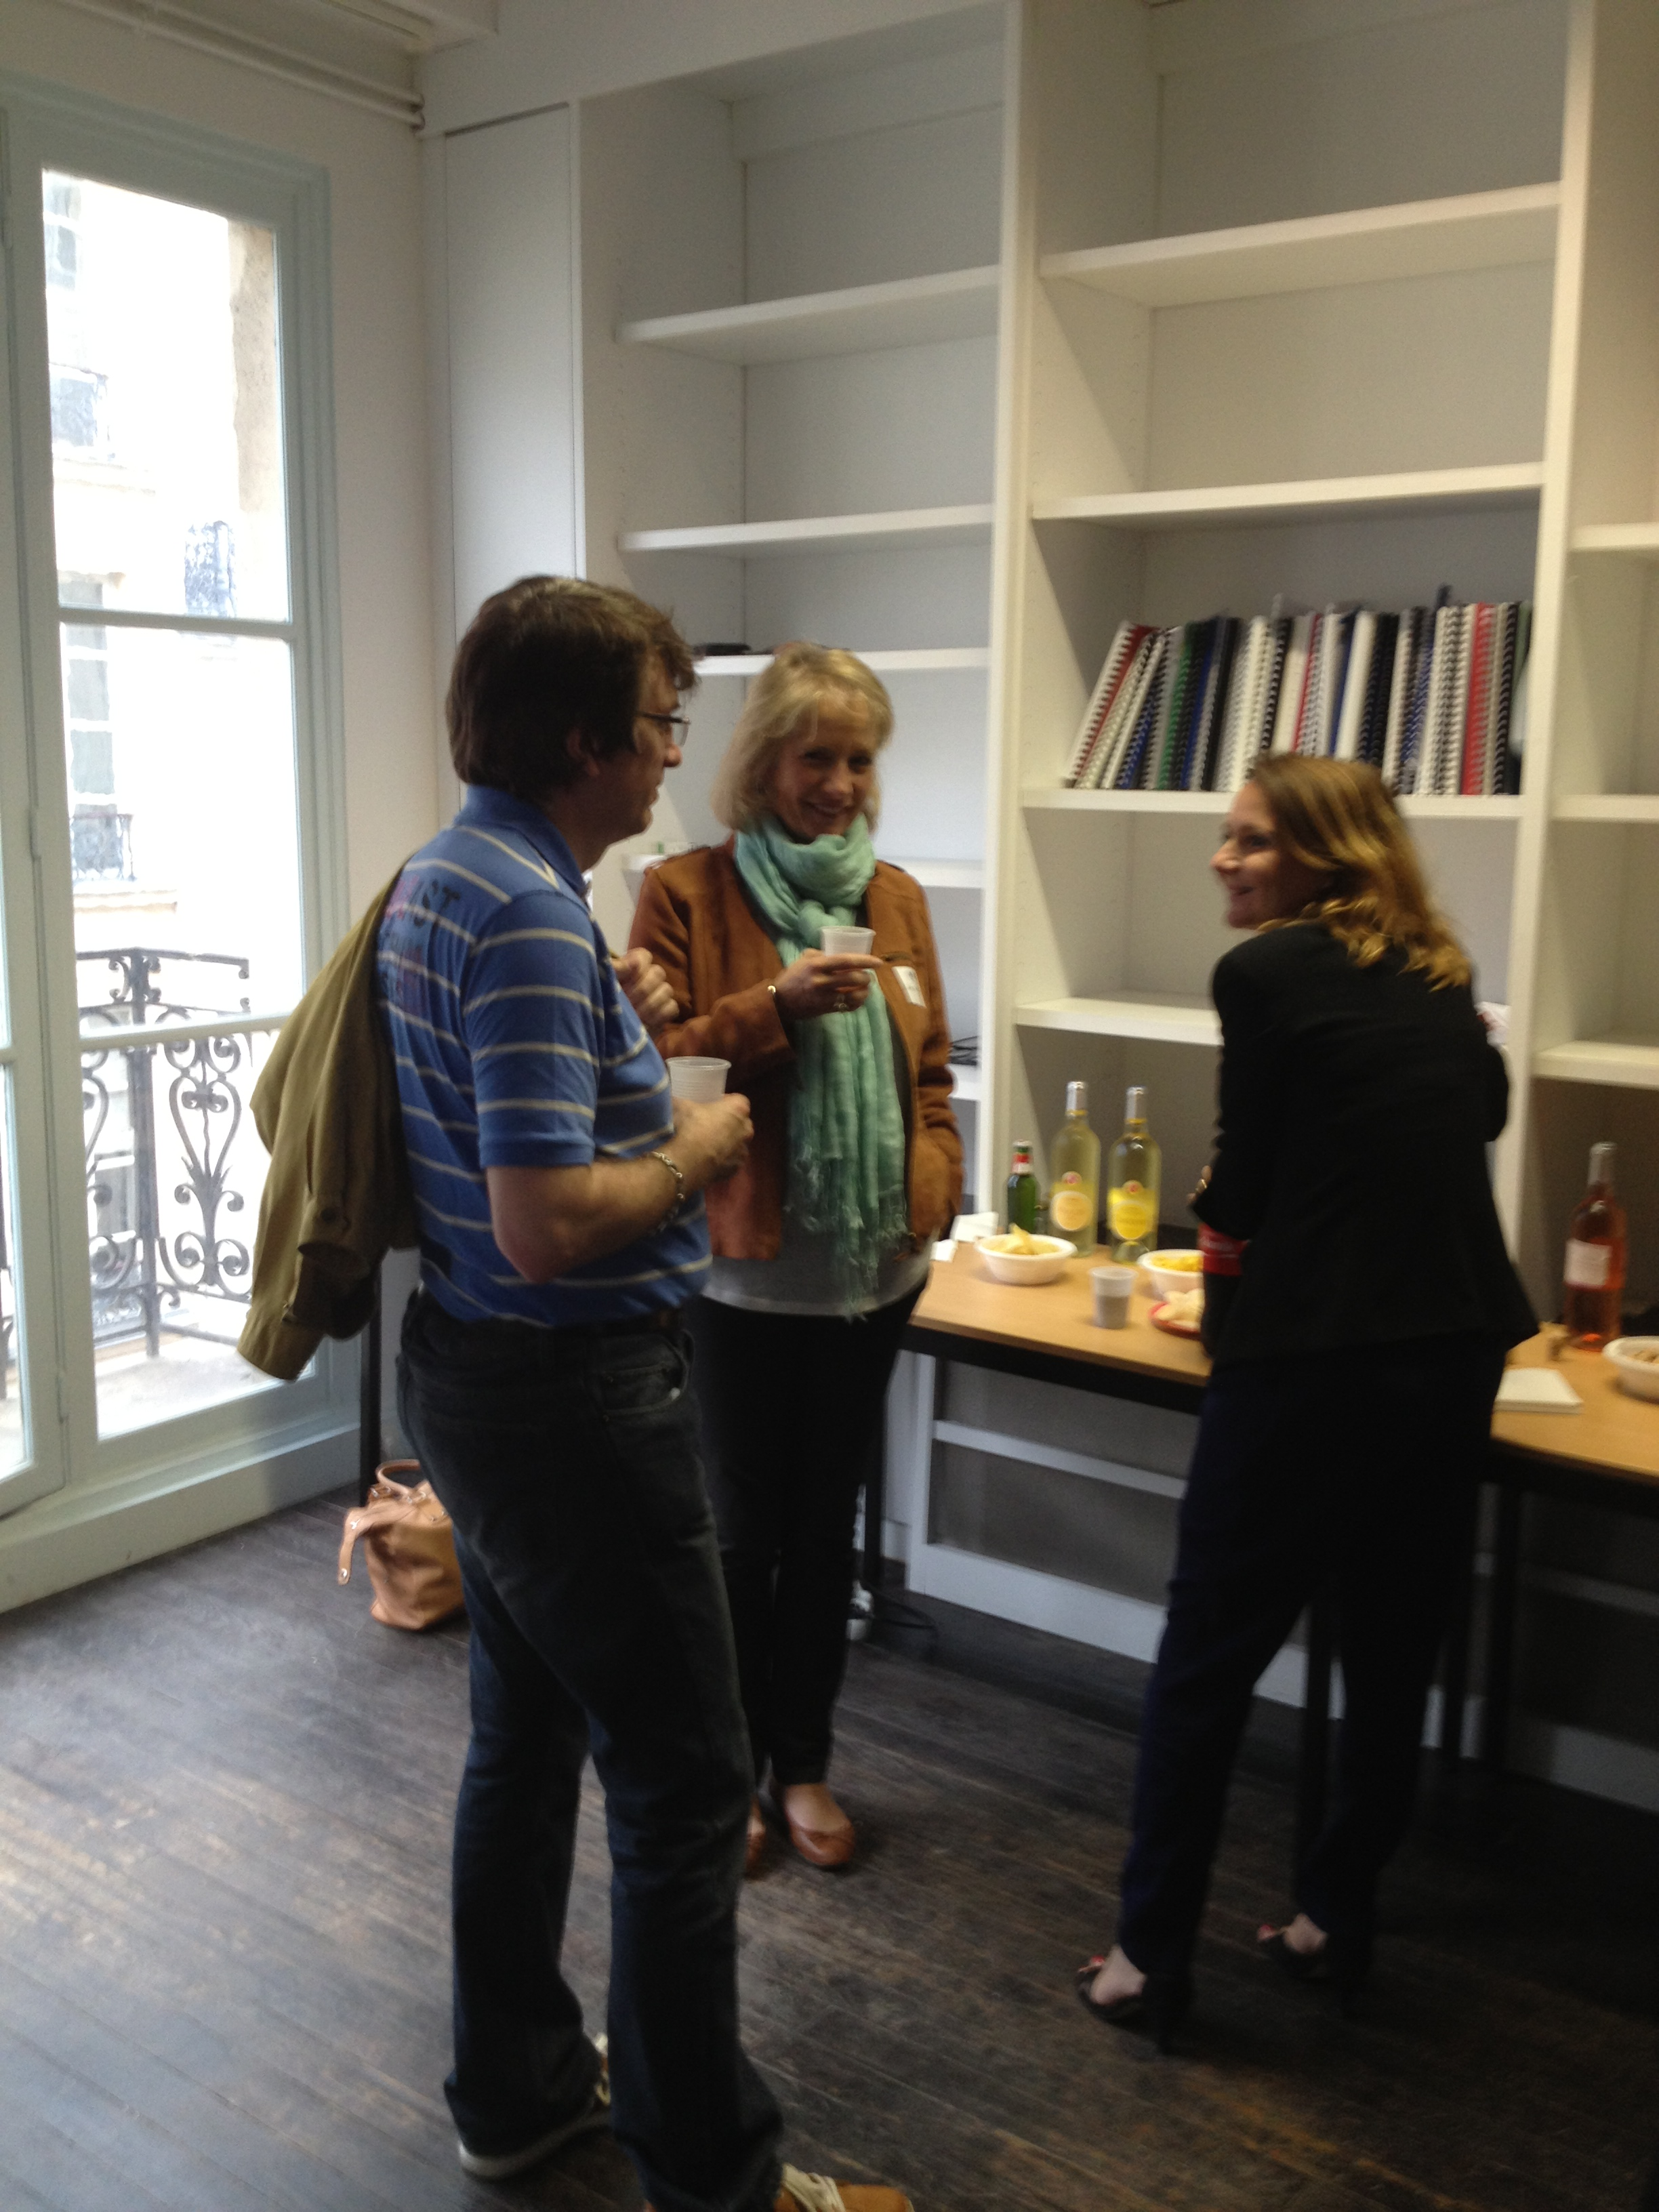 Afterwork - VAE - Cabinet Les 2 Rives - ADVAE - Association